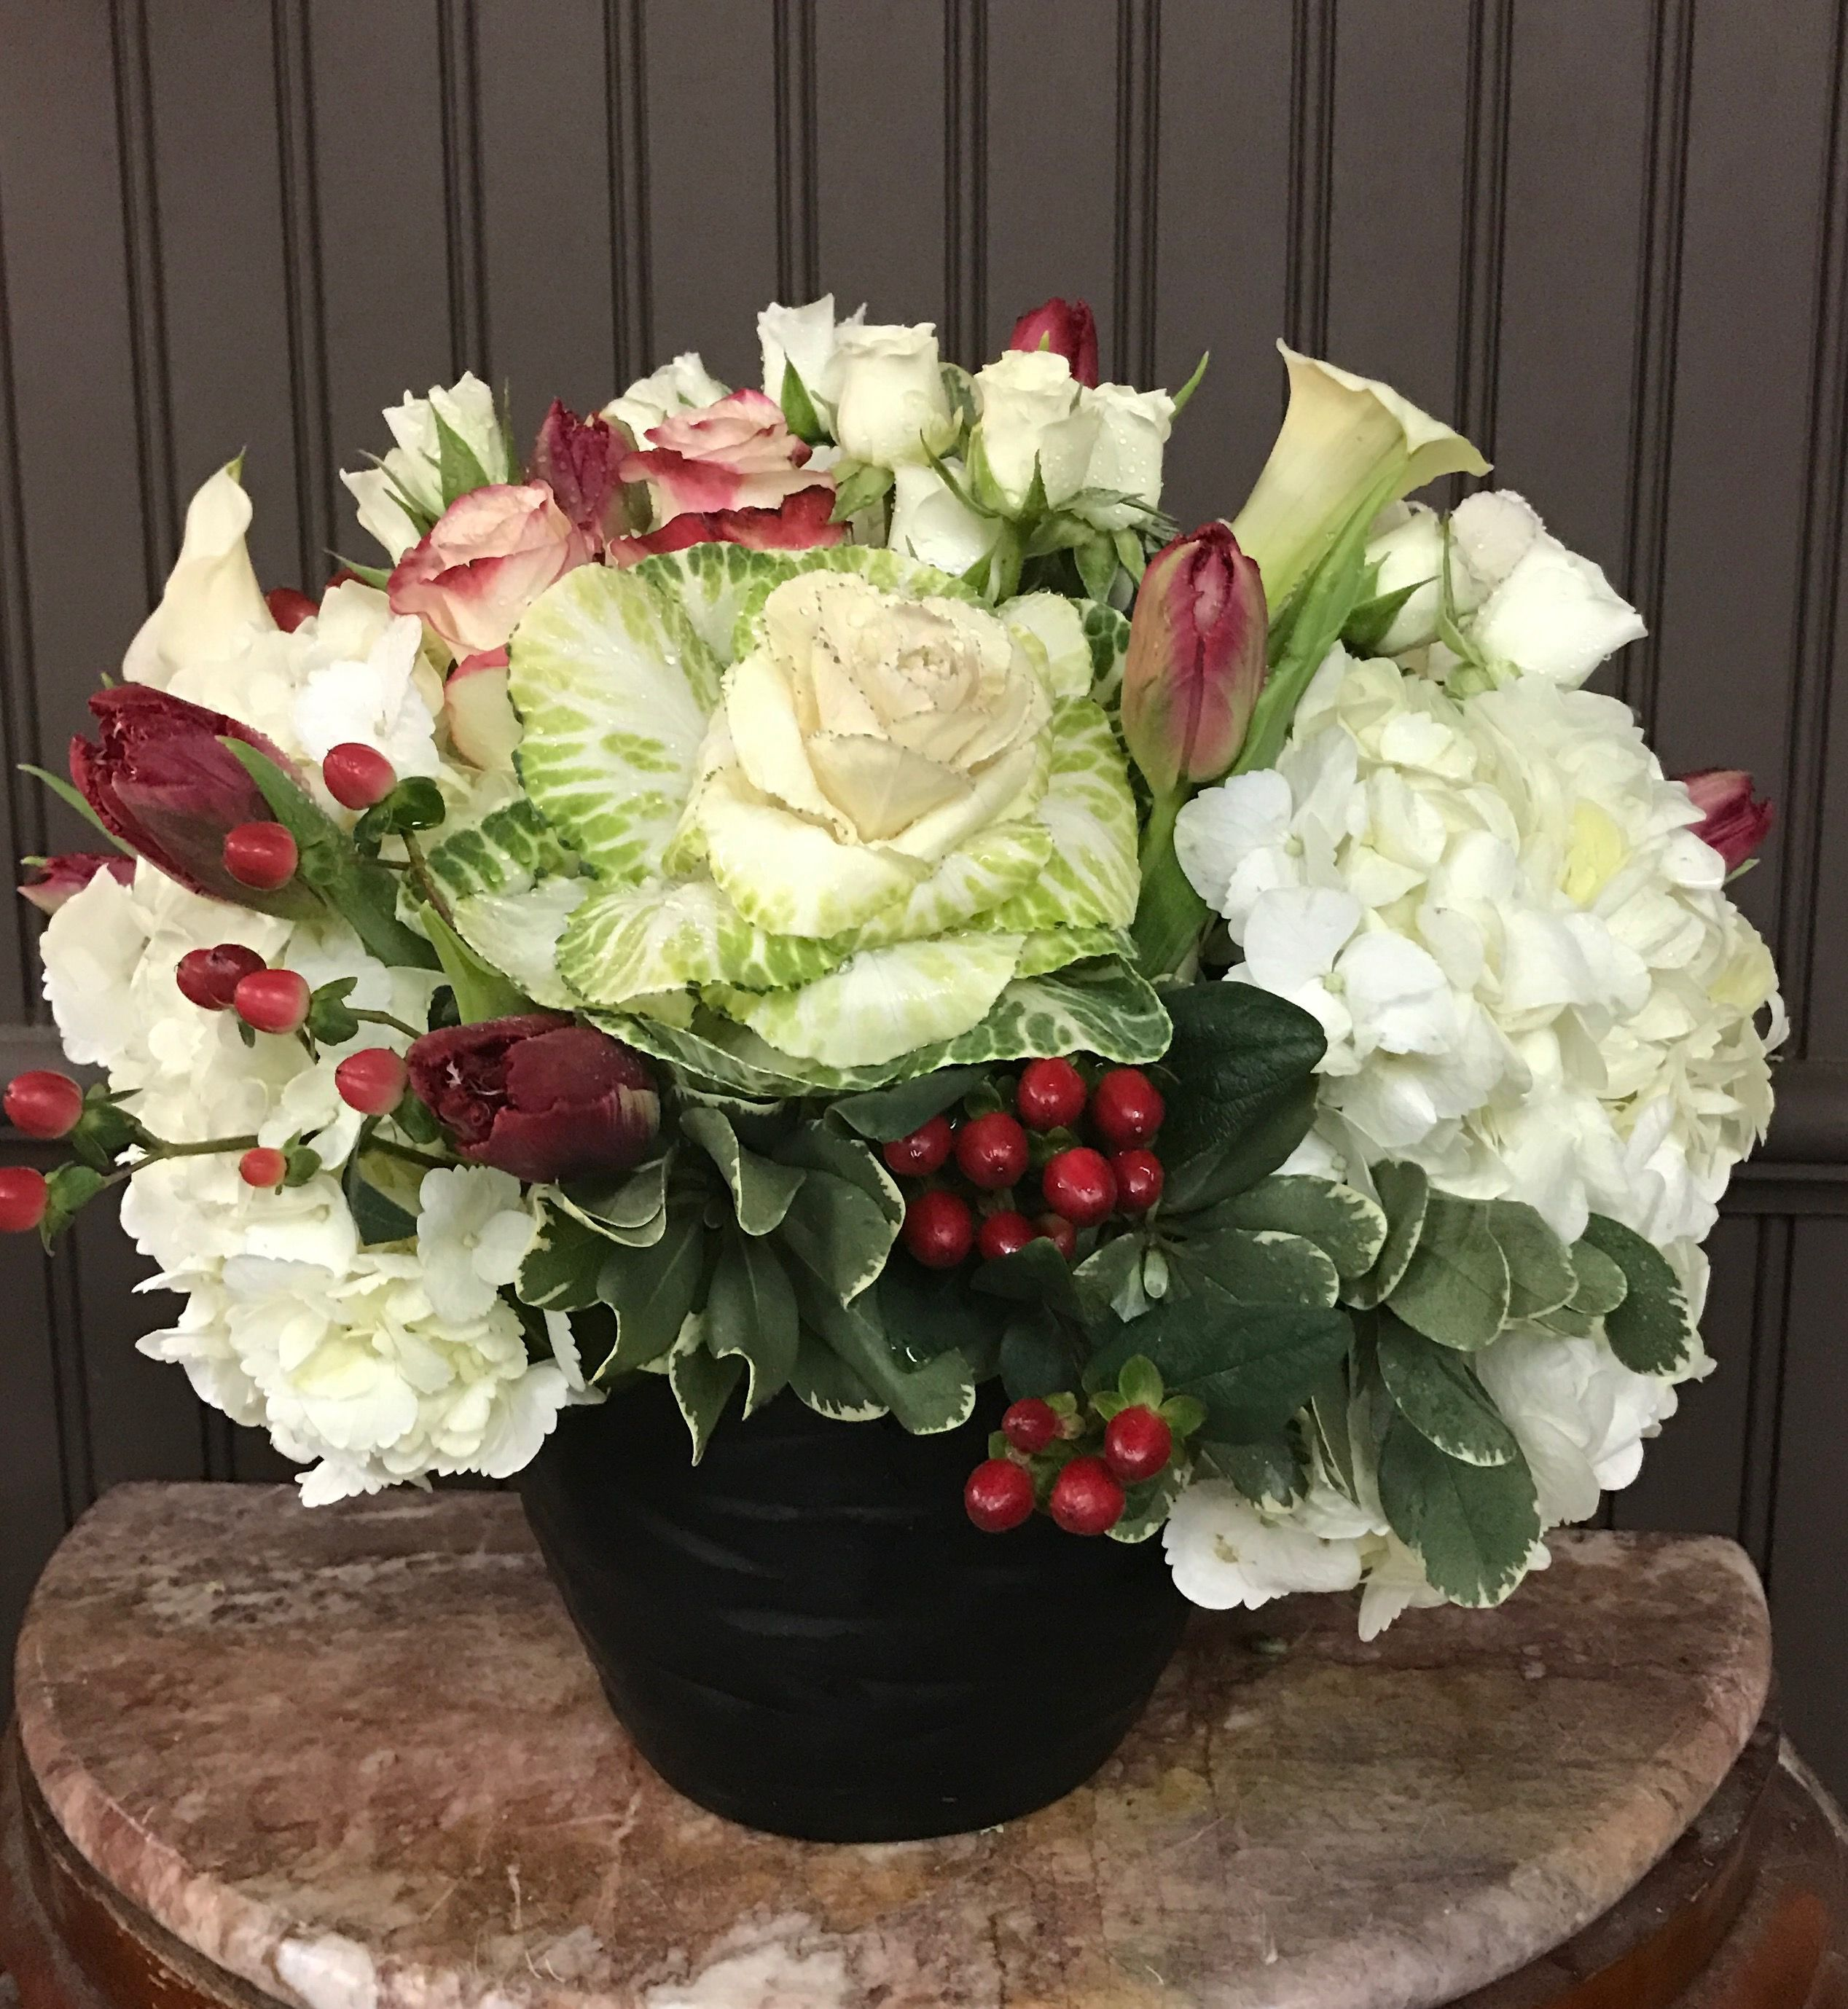 White Cabbage Hydrangea Roses And Berries Modern Arrangement In